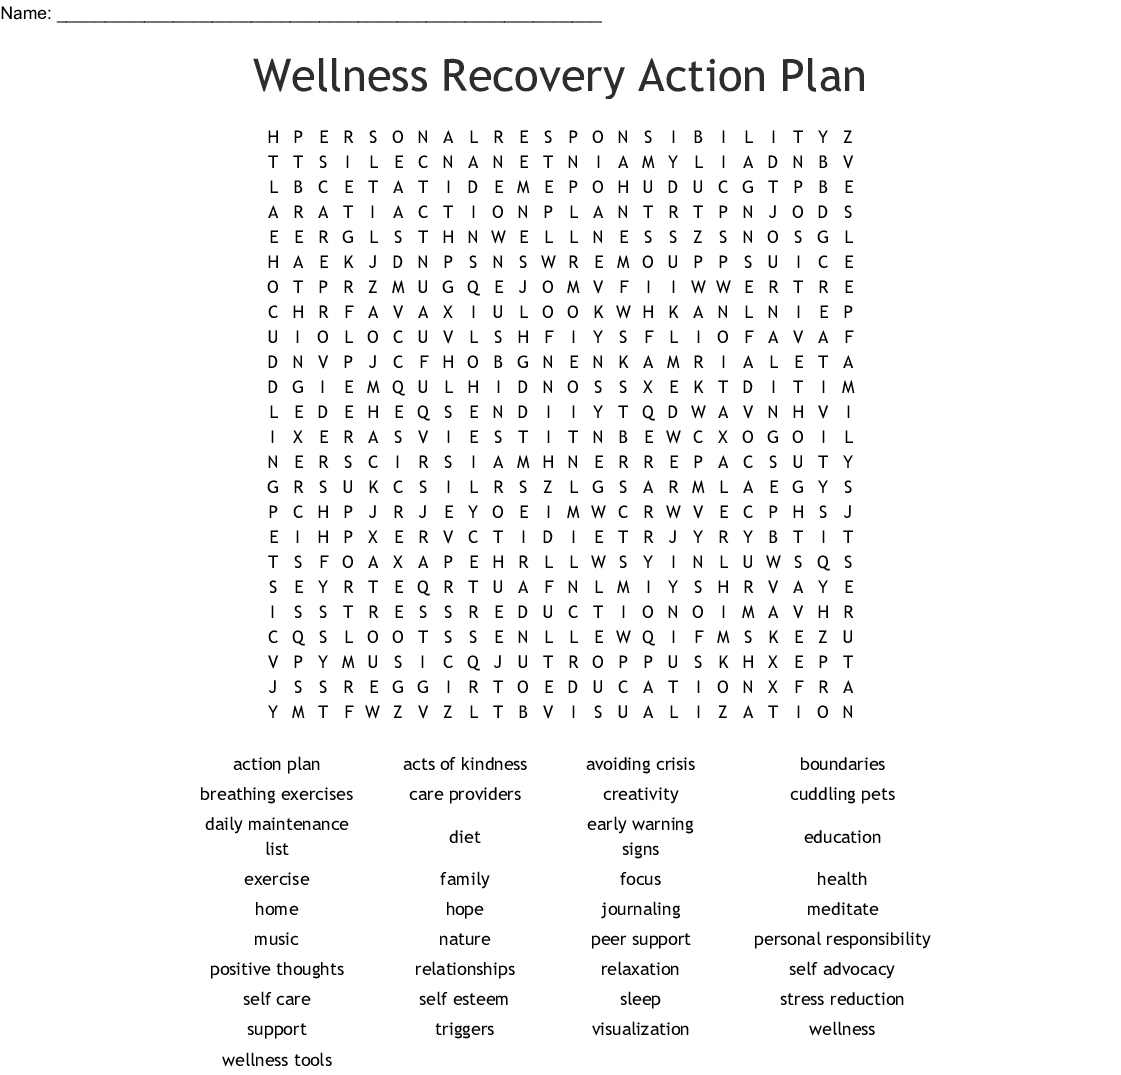 Wellness Recovery Action Plan Word Search - Wordmint